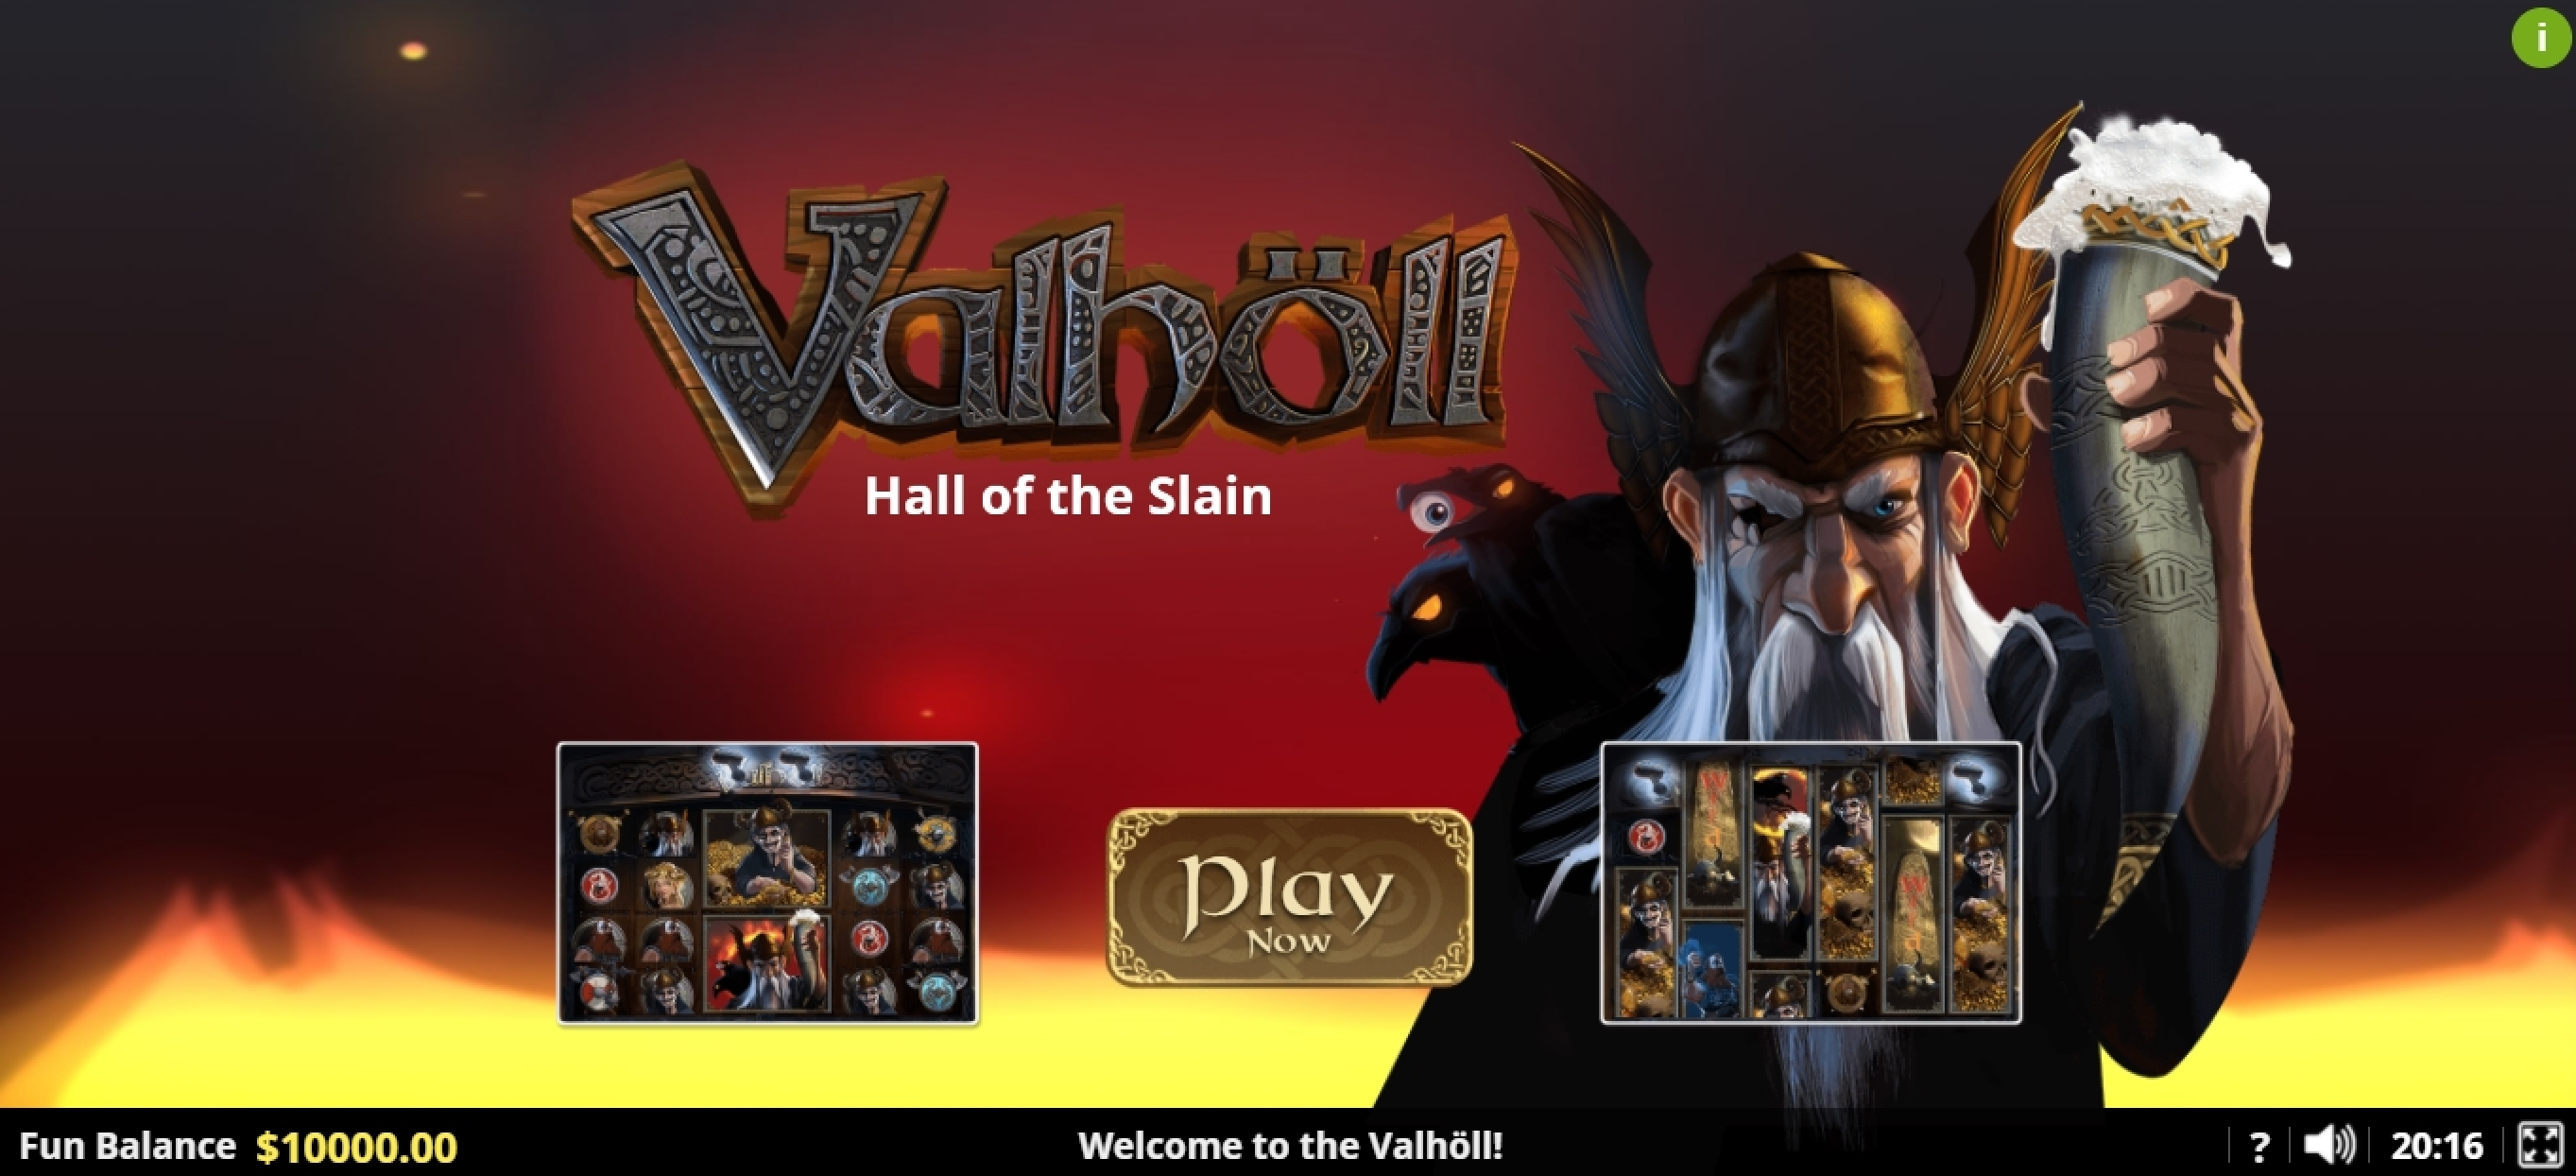 Play Valhôll Hall of The Slain Free Casino Slot Game by Lady Luck Games